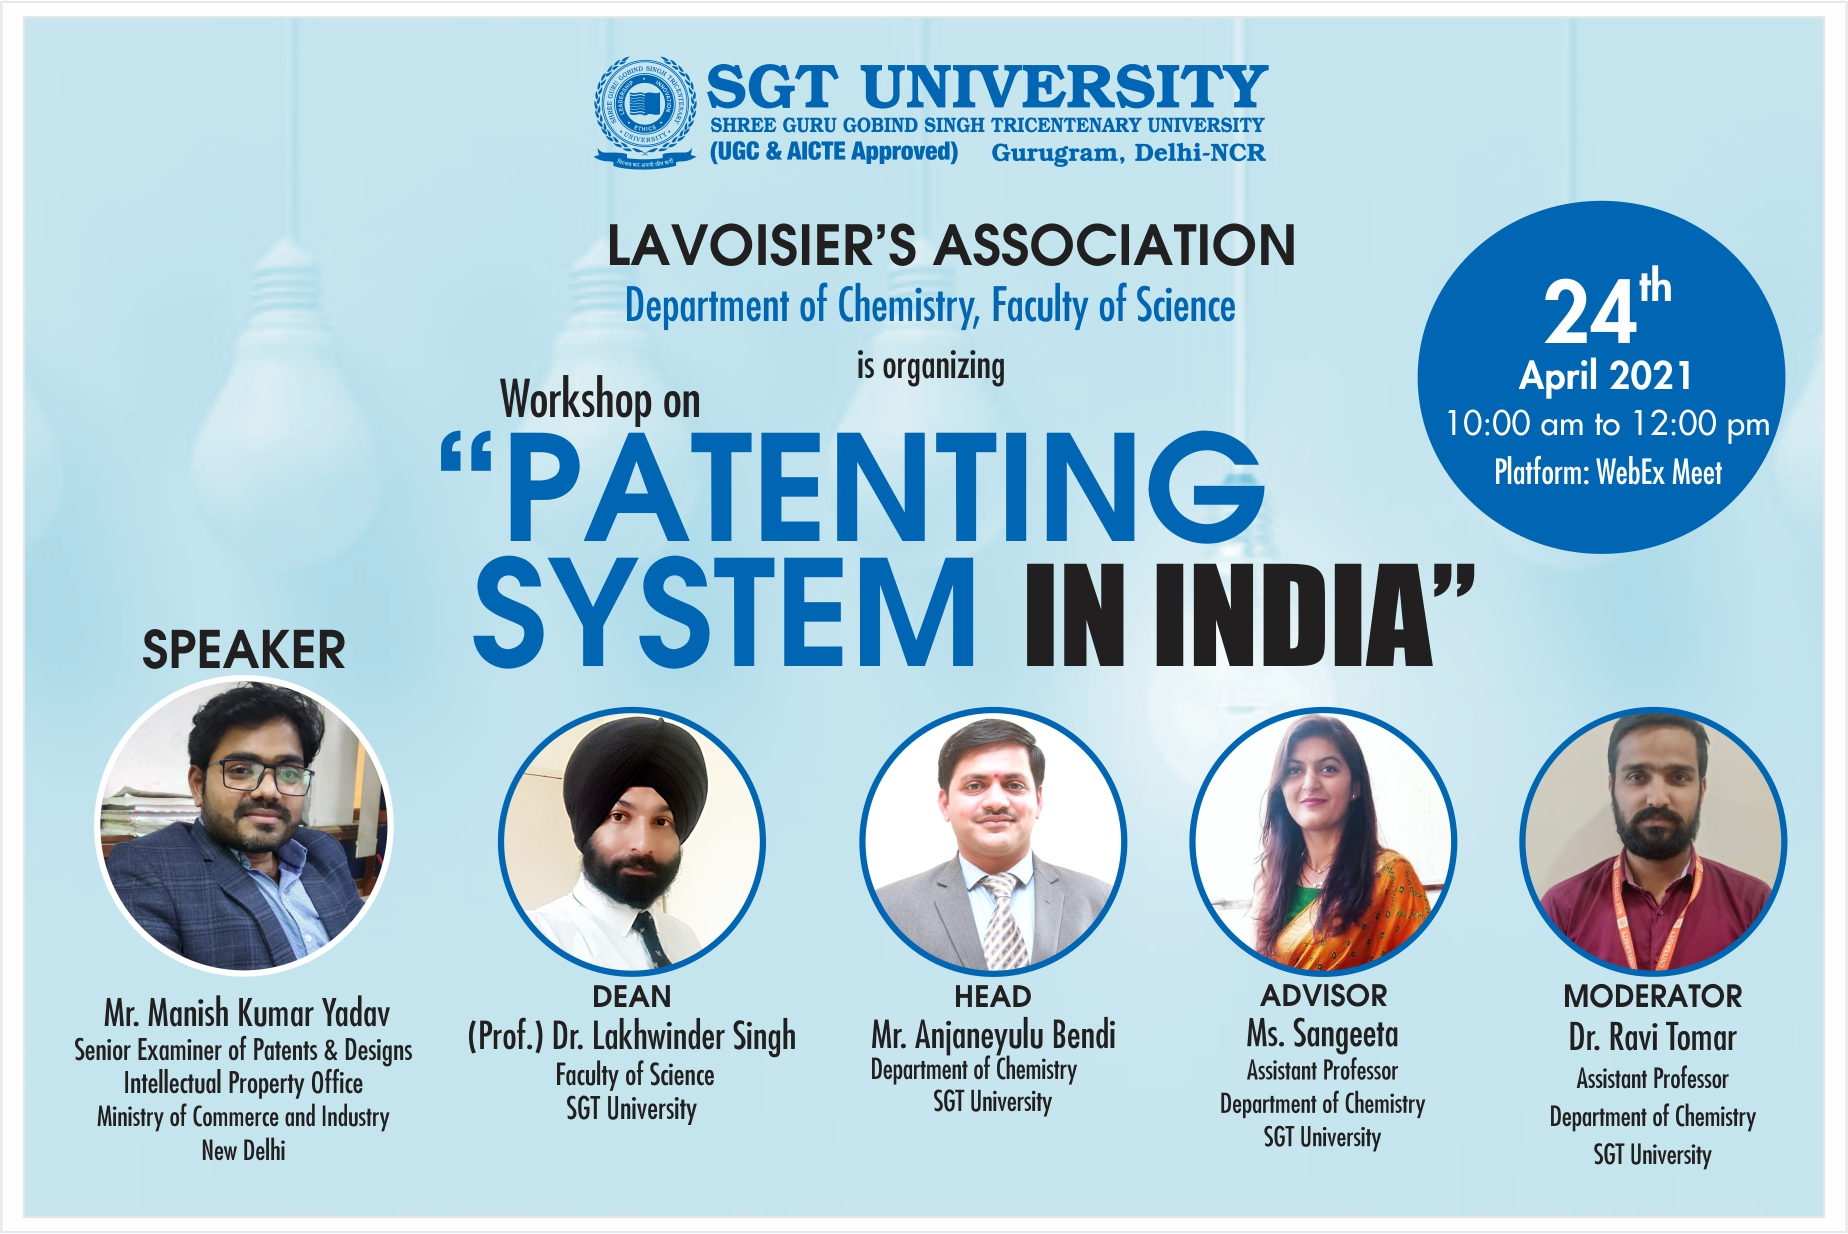 Patenting System in India